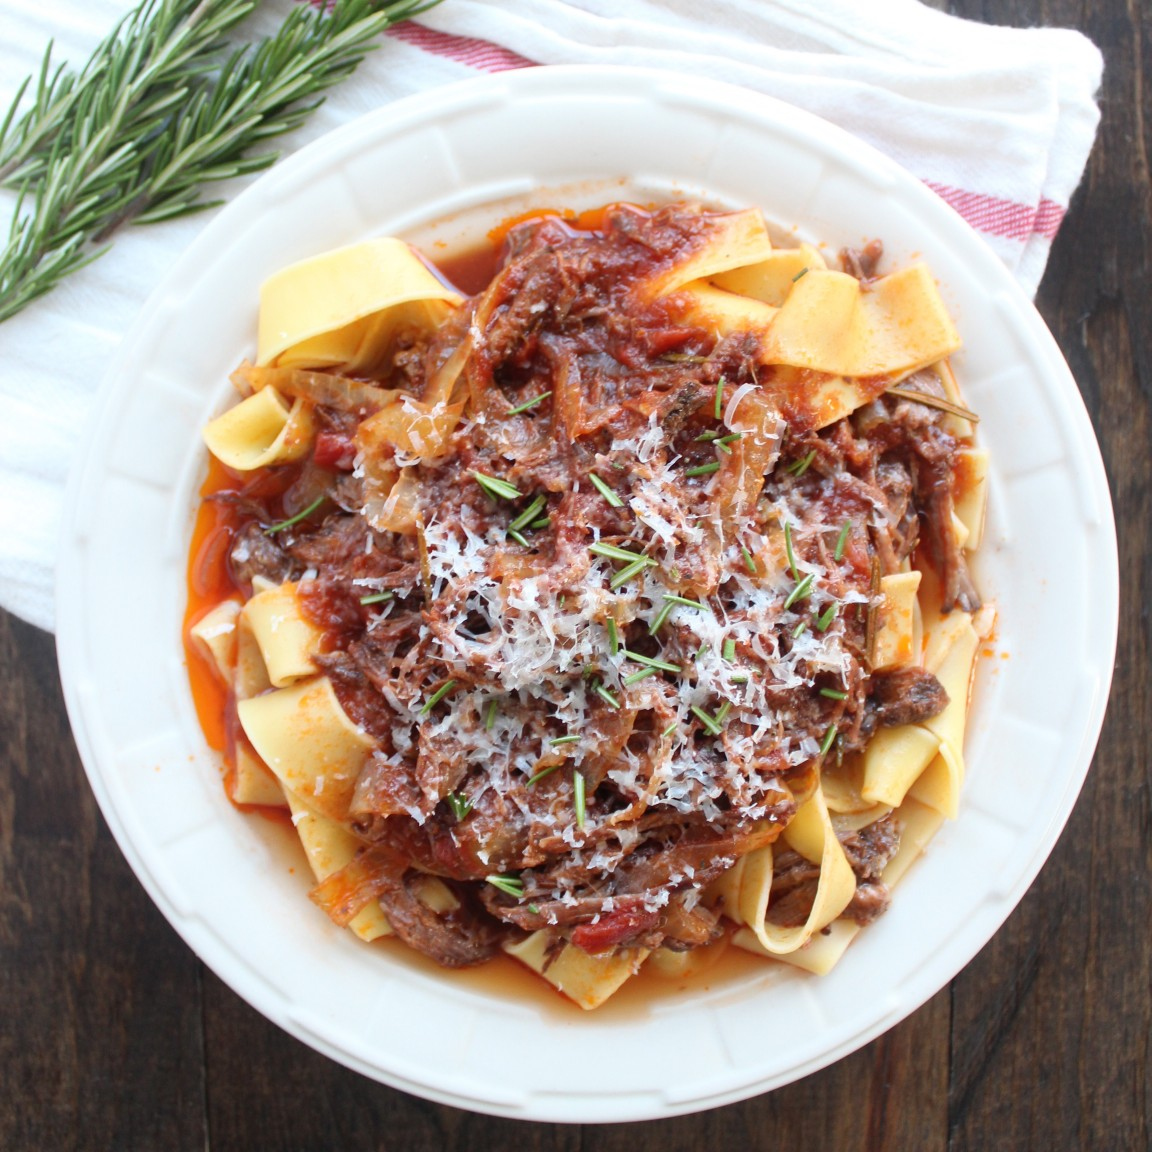 Slow Cooked Beef Ragu Slow Cooked Beef Ragu Recipe - Whitneybond.Com